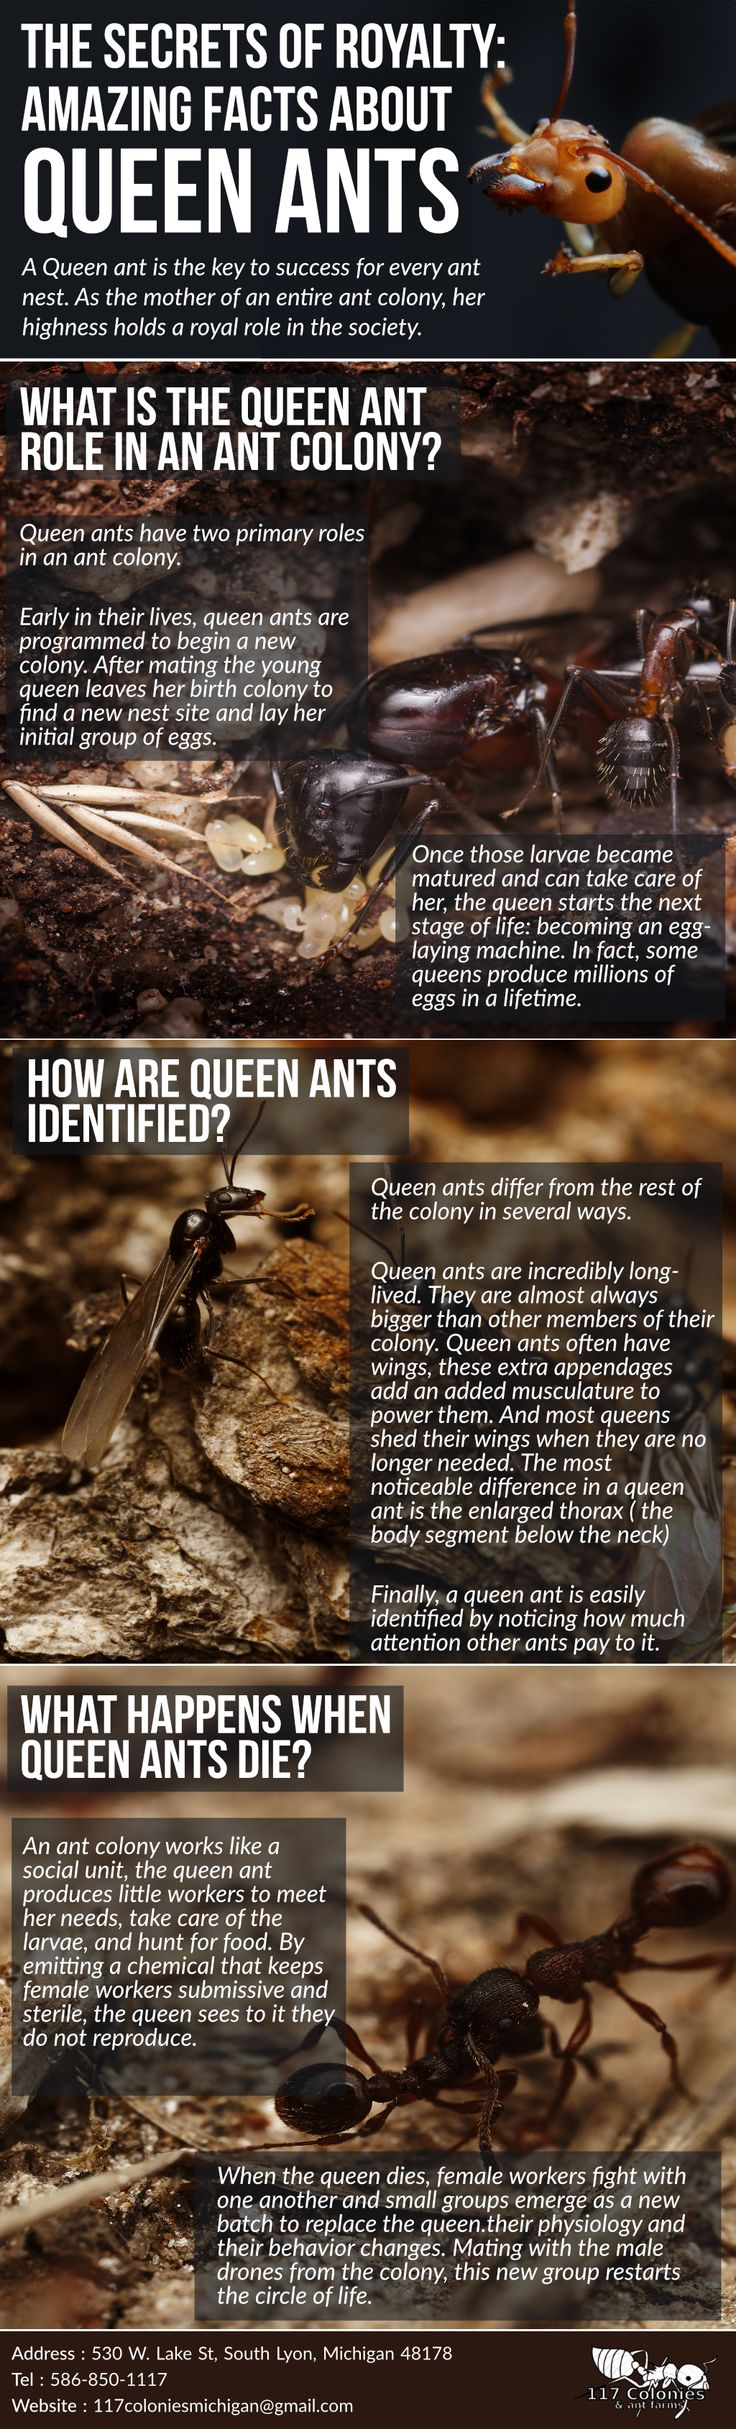 The Secrets Of Royalty: Amazing Facts About Queen Ants #infographic http://bit.ly/2mvUxoF